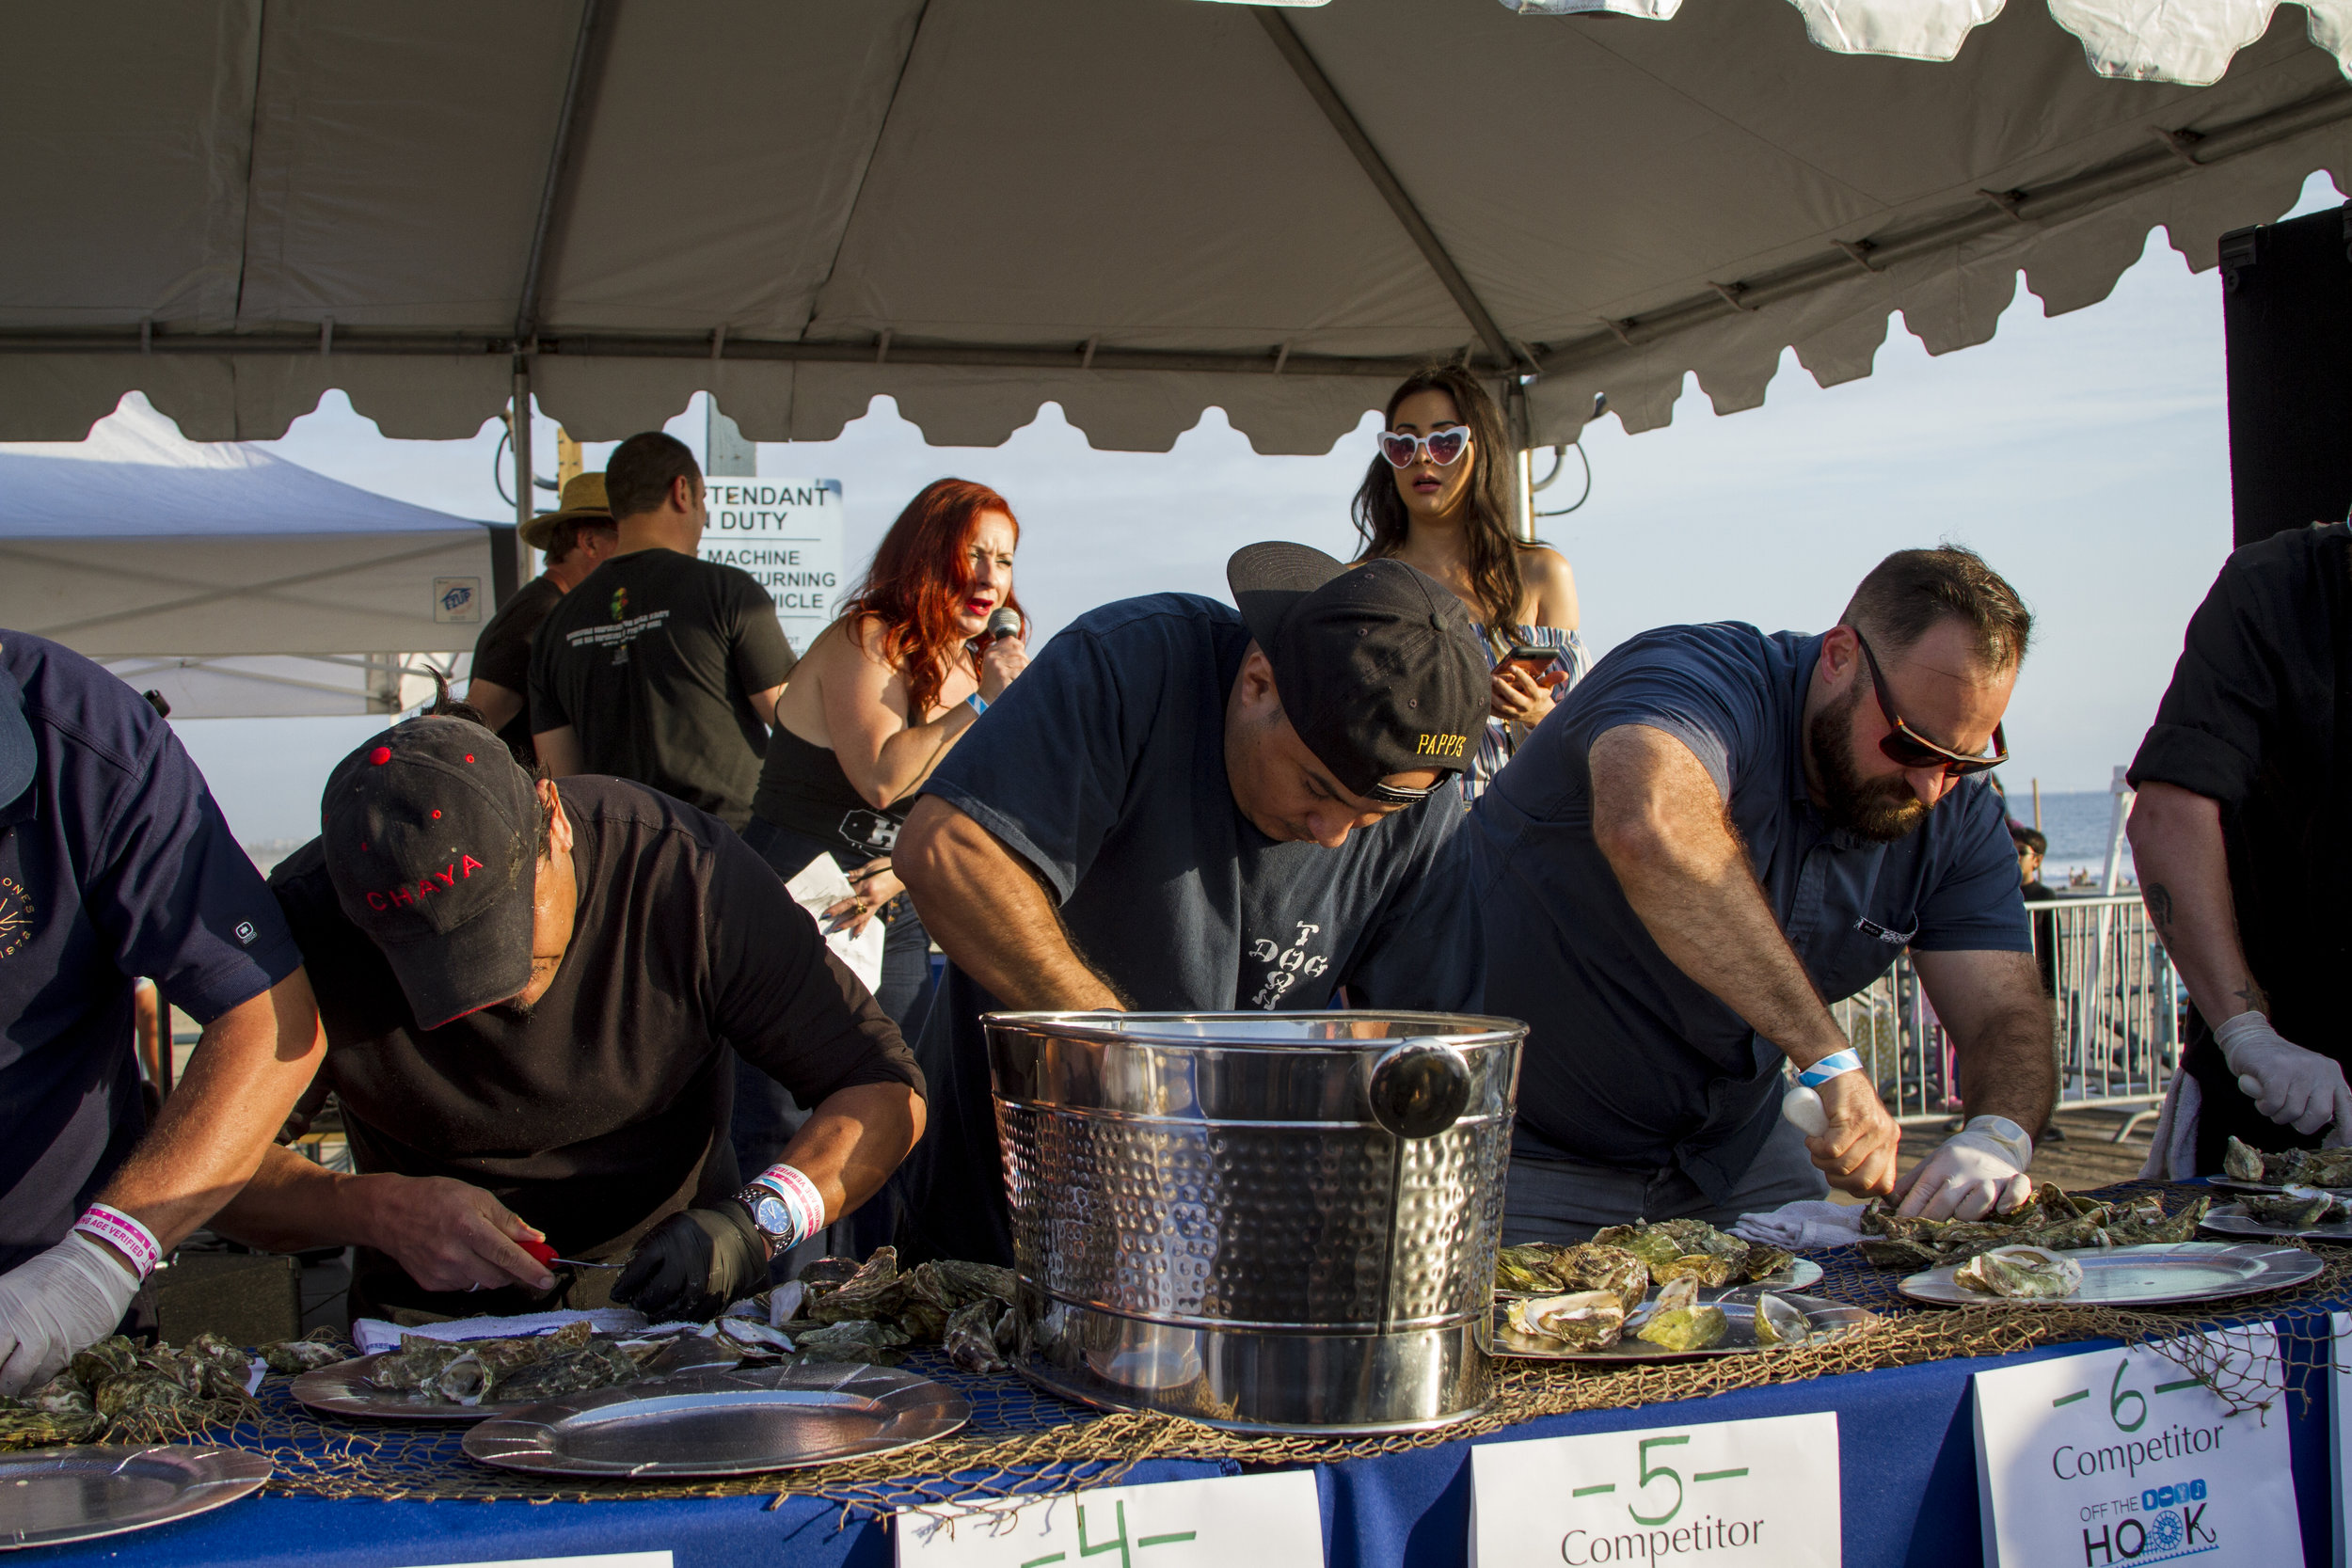 Competitors shucking oysters in under two minutes. At Off the Hook Seafood Festival. Oct. 6, 2018. By Yasser Marte.